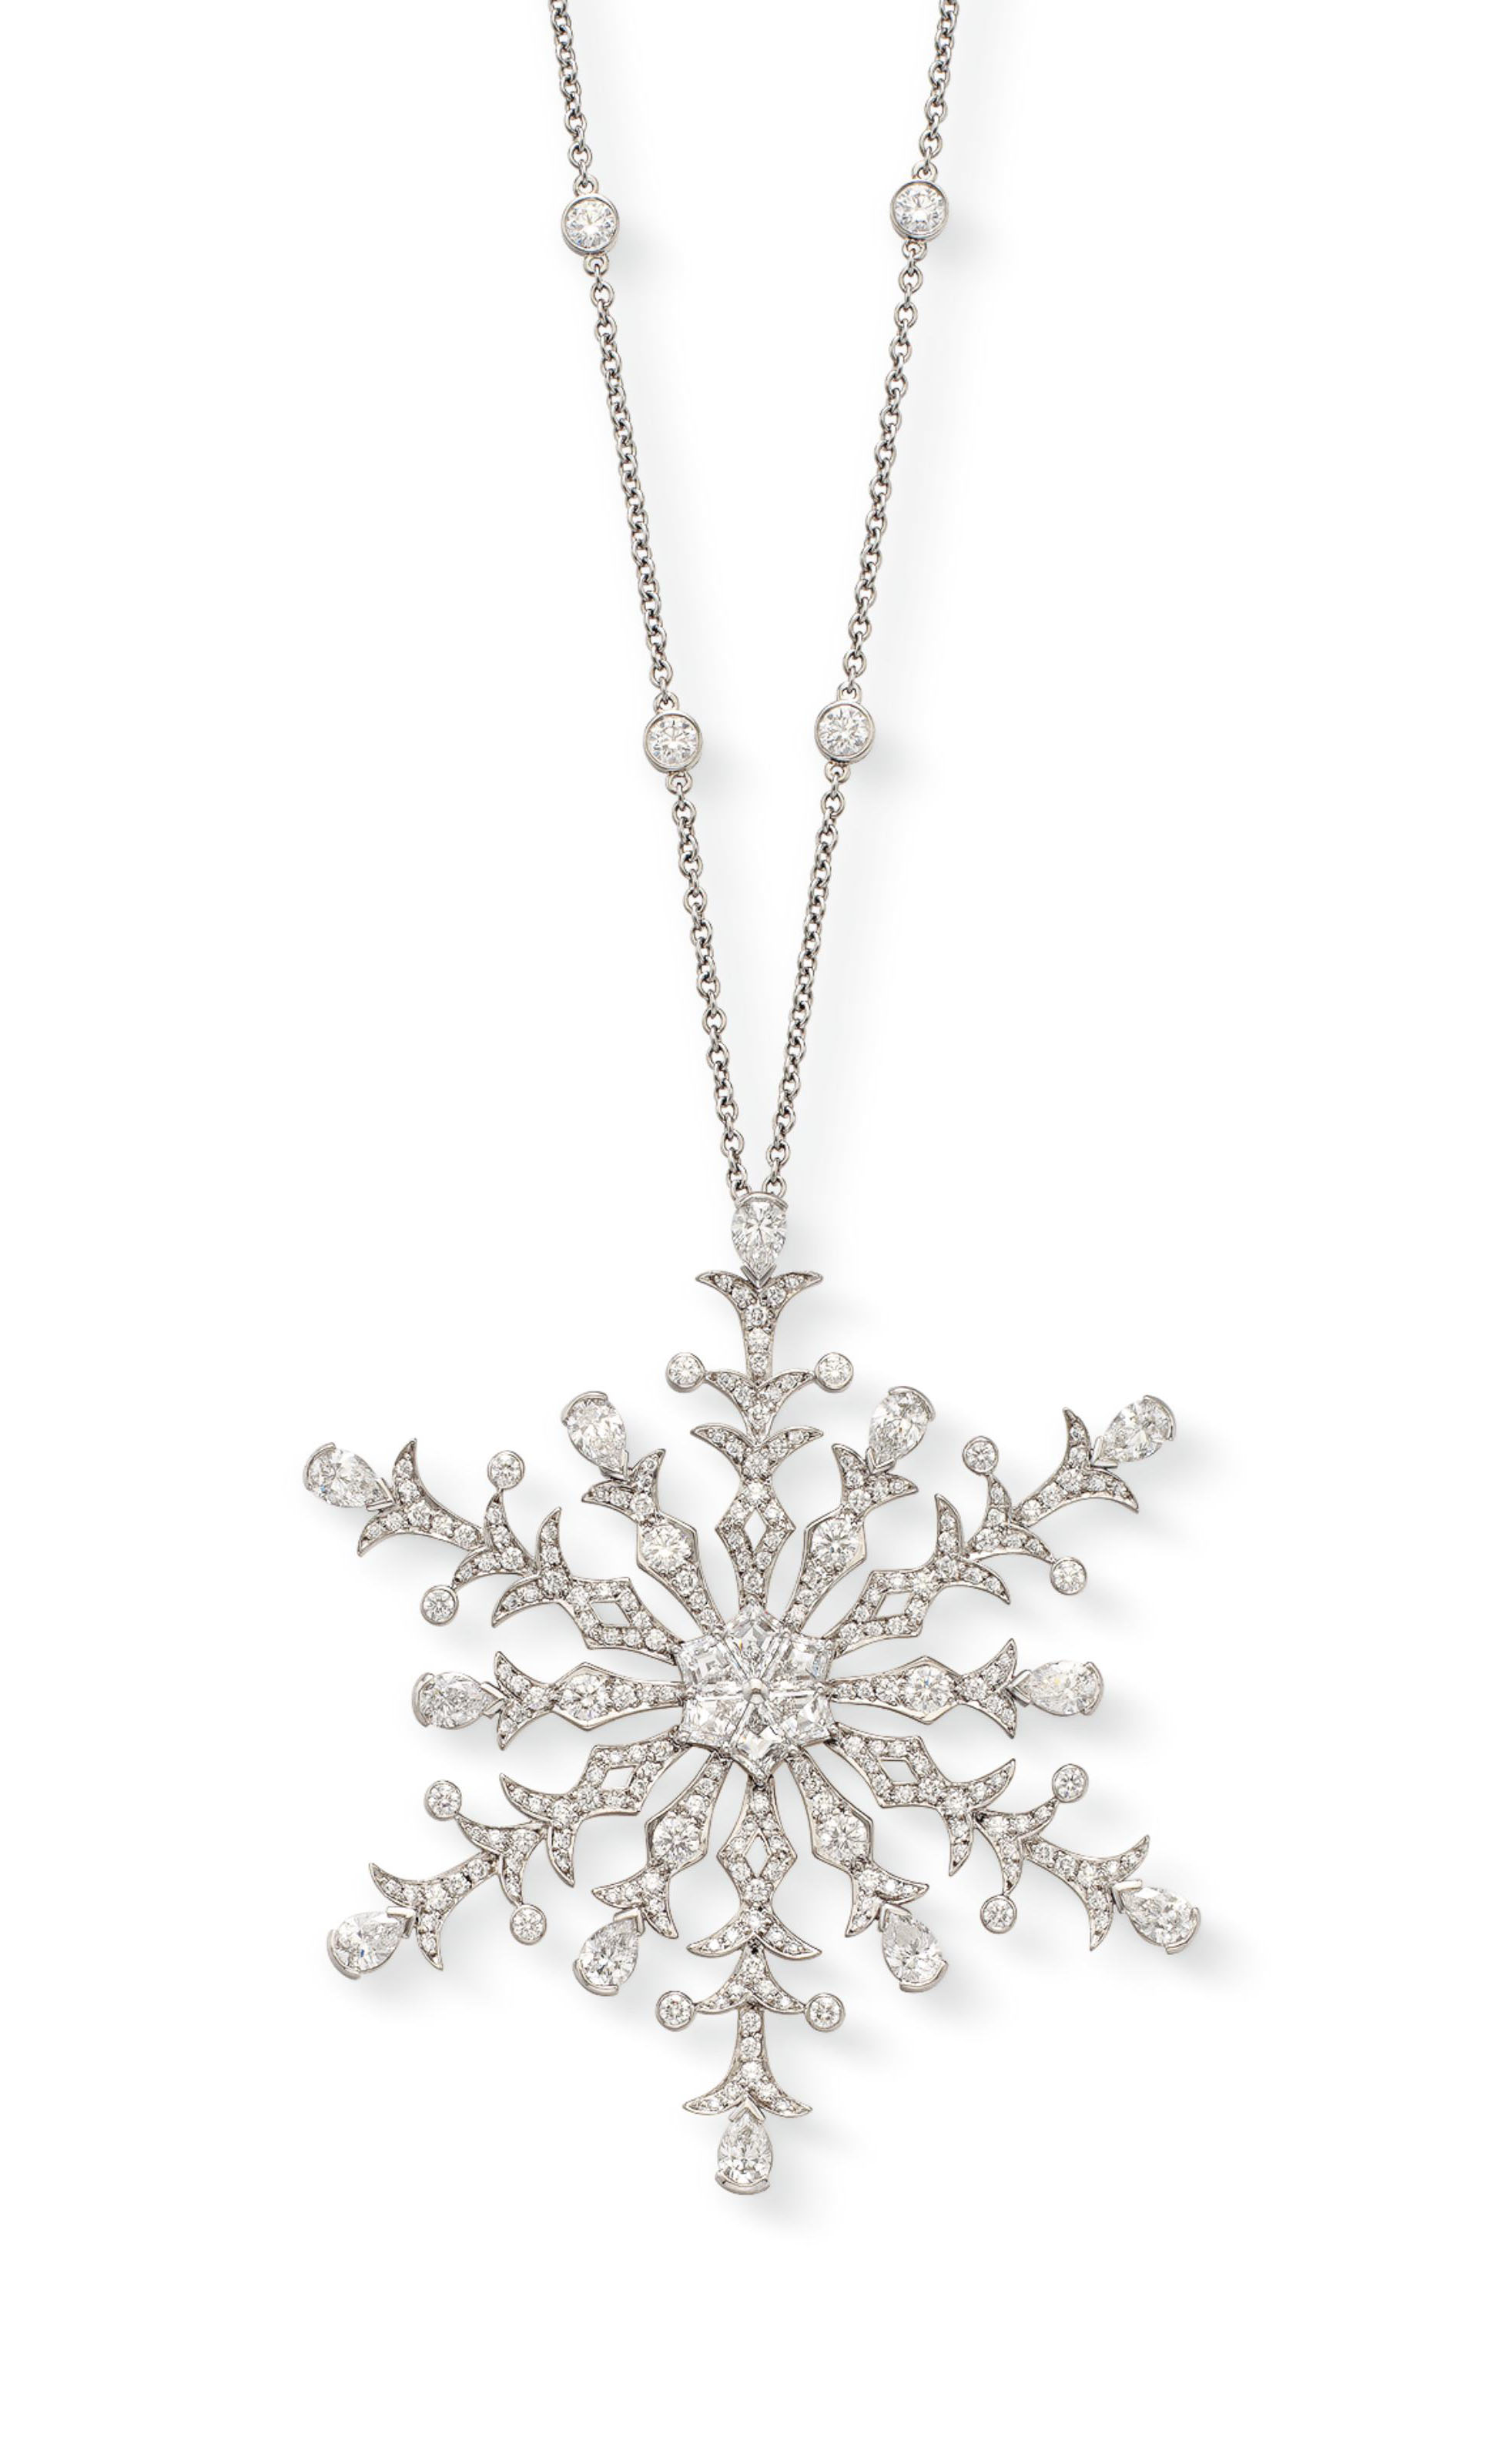 e4542cd43 A DIAMOND SNOWFLAKE PENDANT NECKLACE, BY TIFFANY & CO. | Jewelry ...